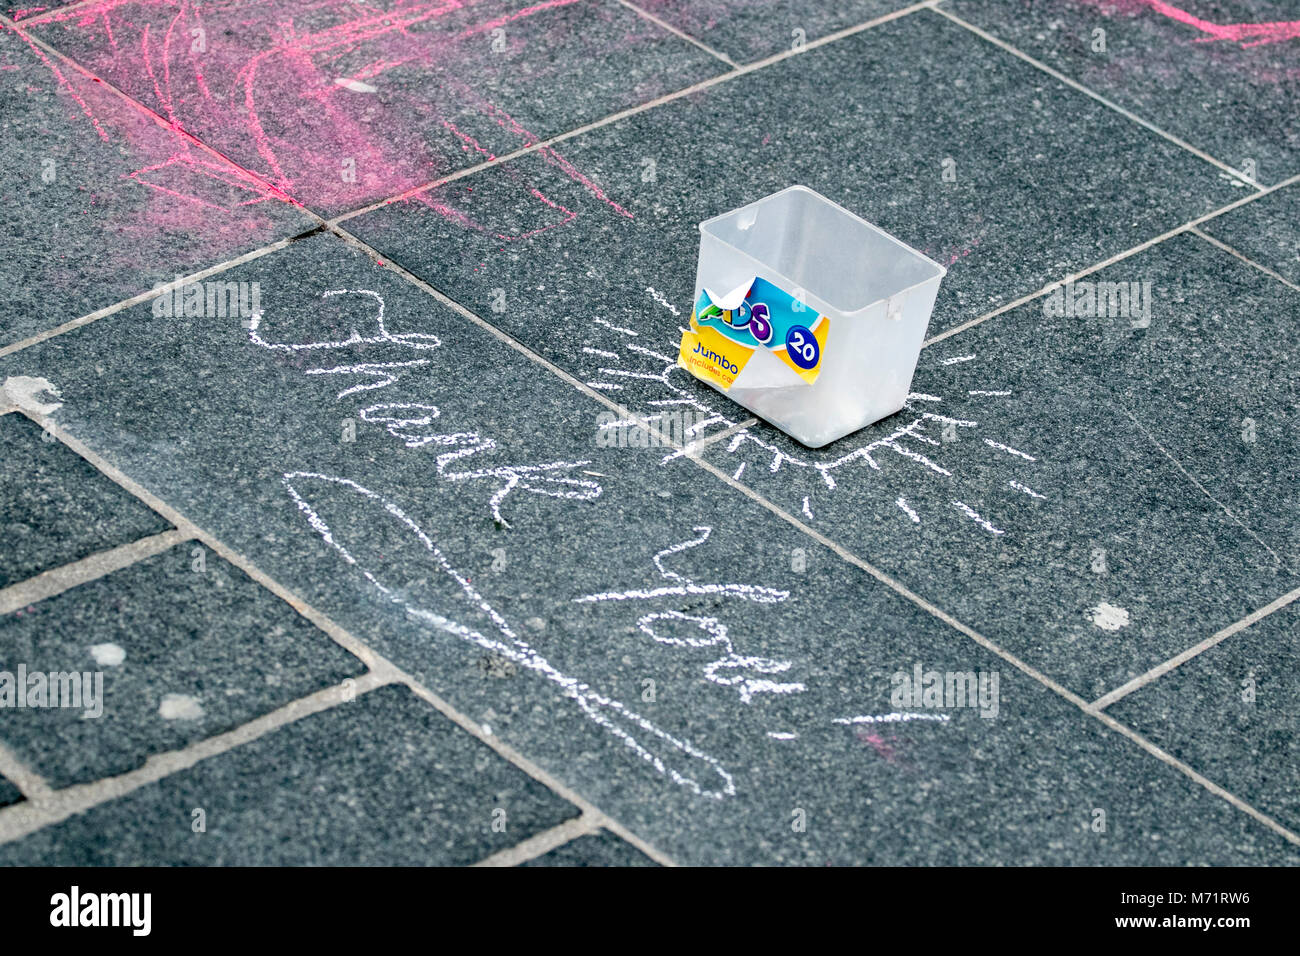 an artists chalk drawing donation tin cash giving money donations donation street Liverpool thank you writing - Stock Image